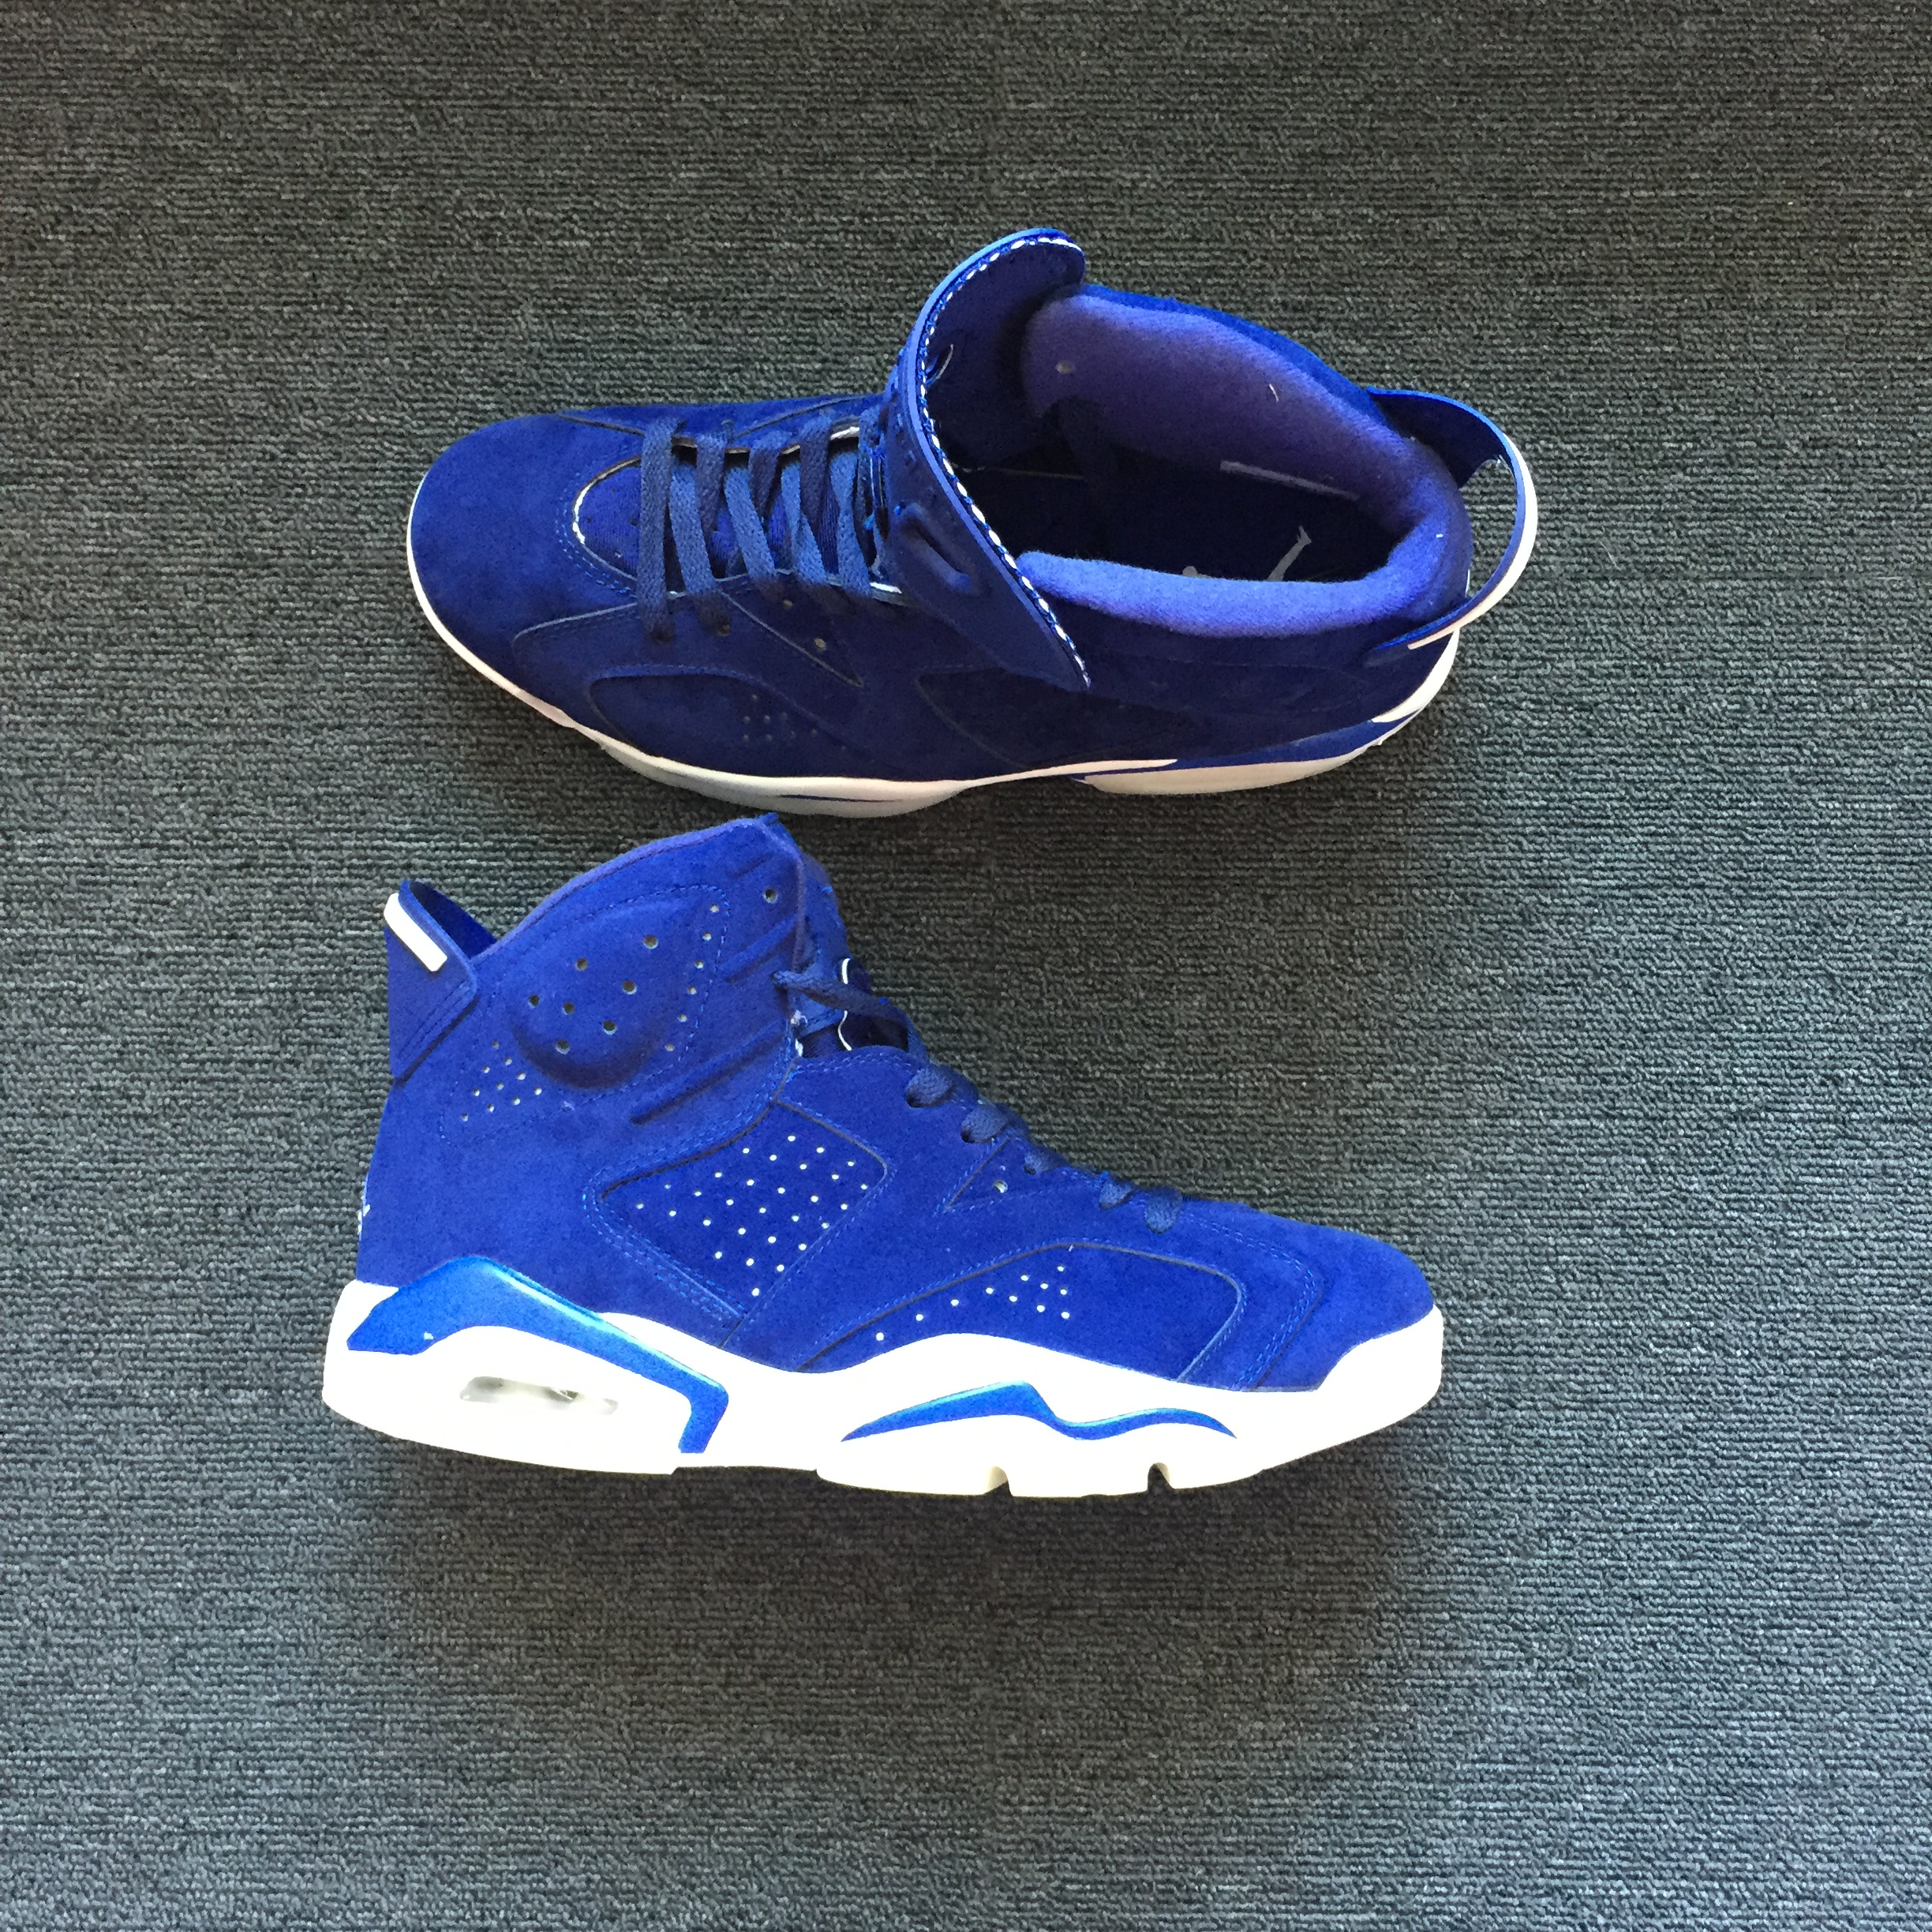 Men Air Jordan 6 Deer Skin Sea Blue Shoes